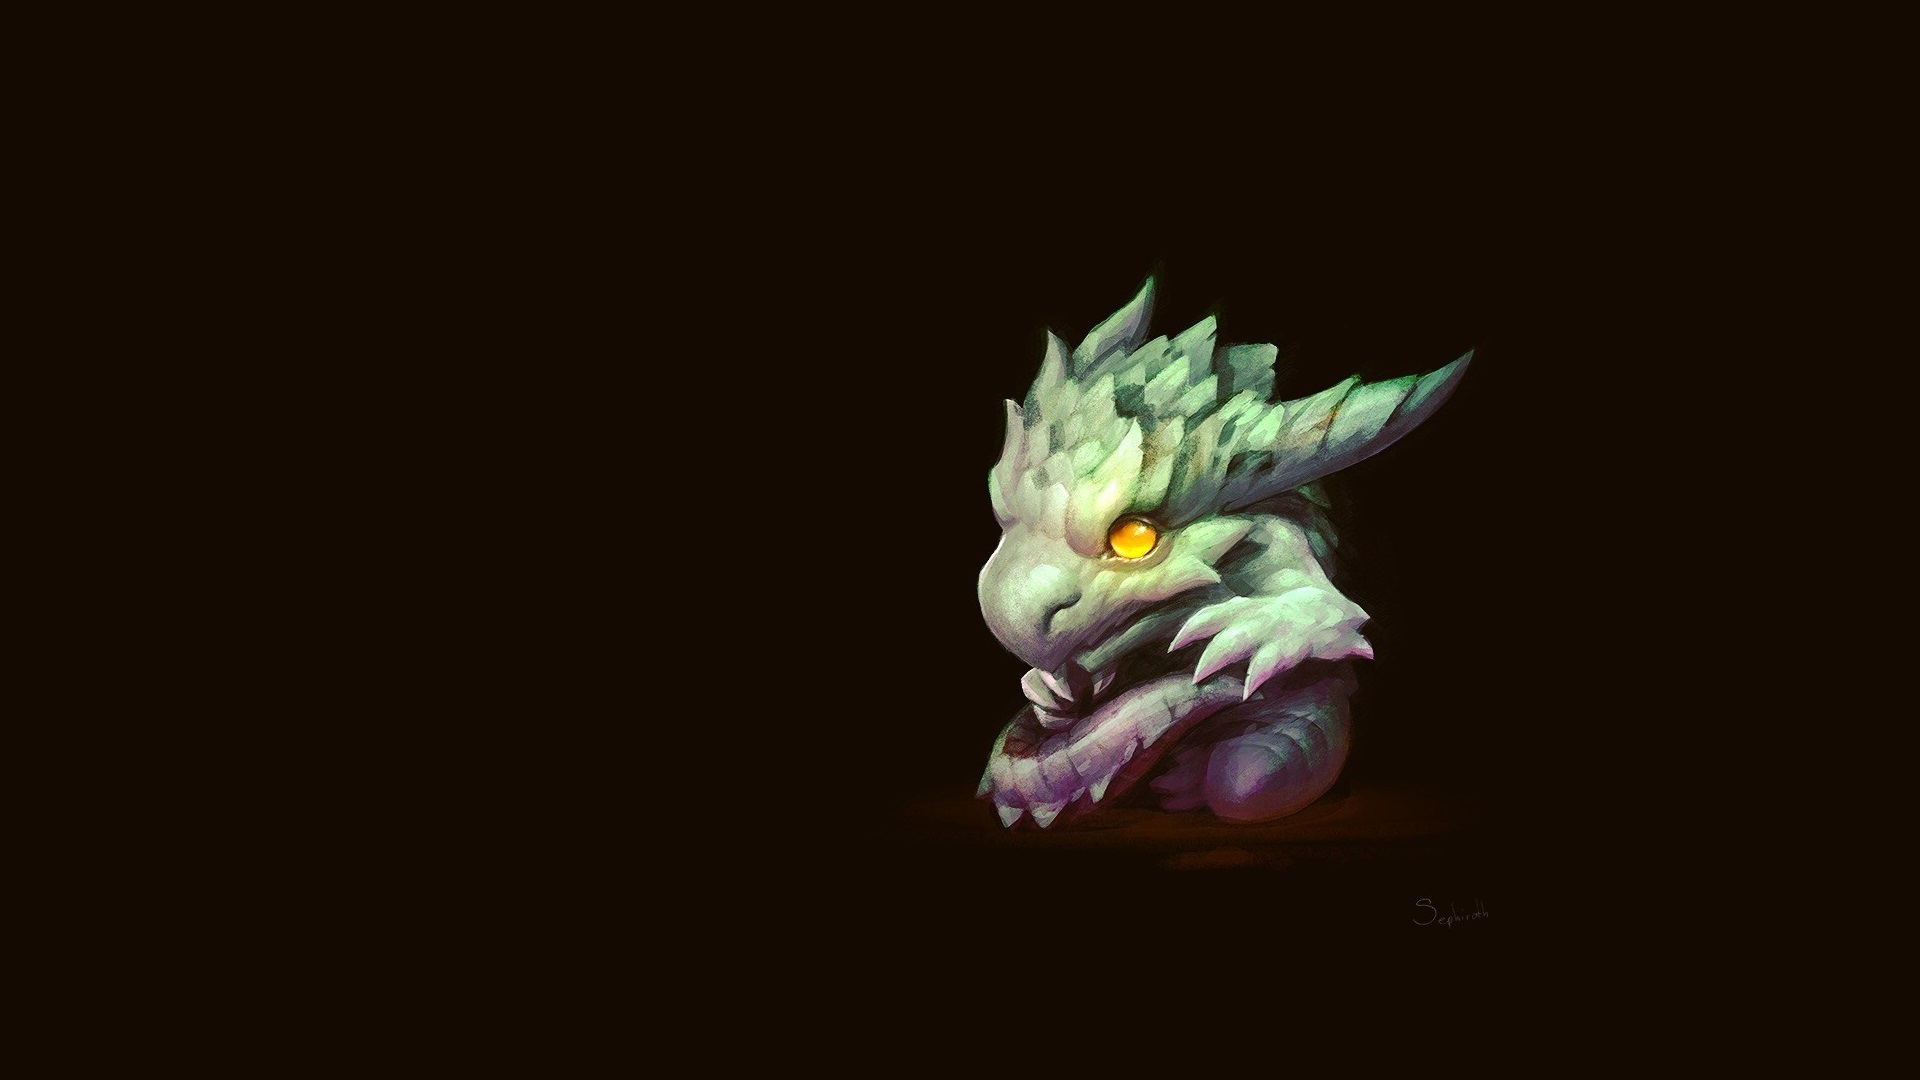 Wallpaper Dragon Art Drawing Black Background 1920x1080 Full Hd 2k Picture Image